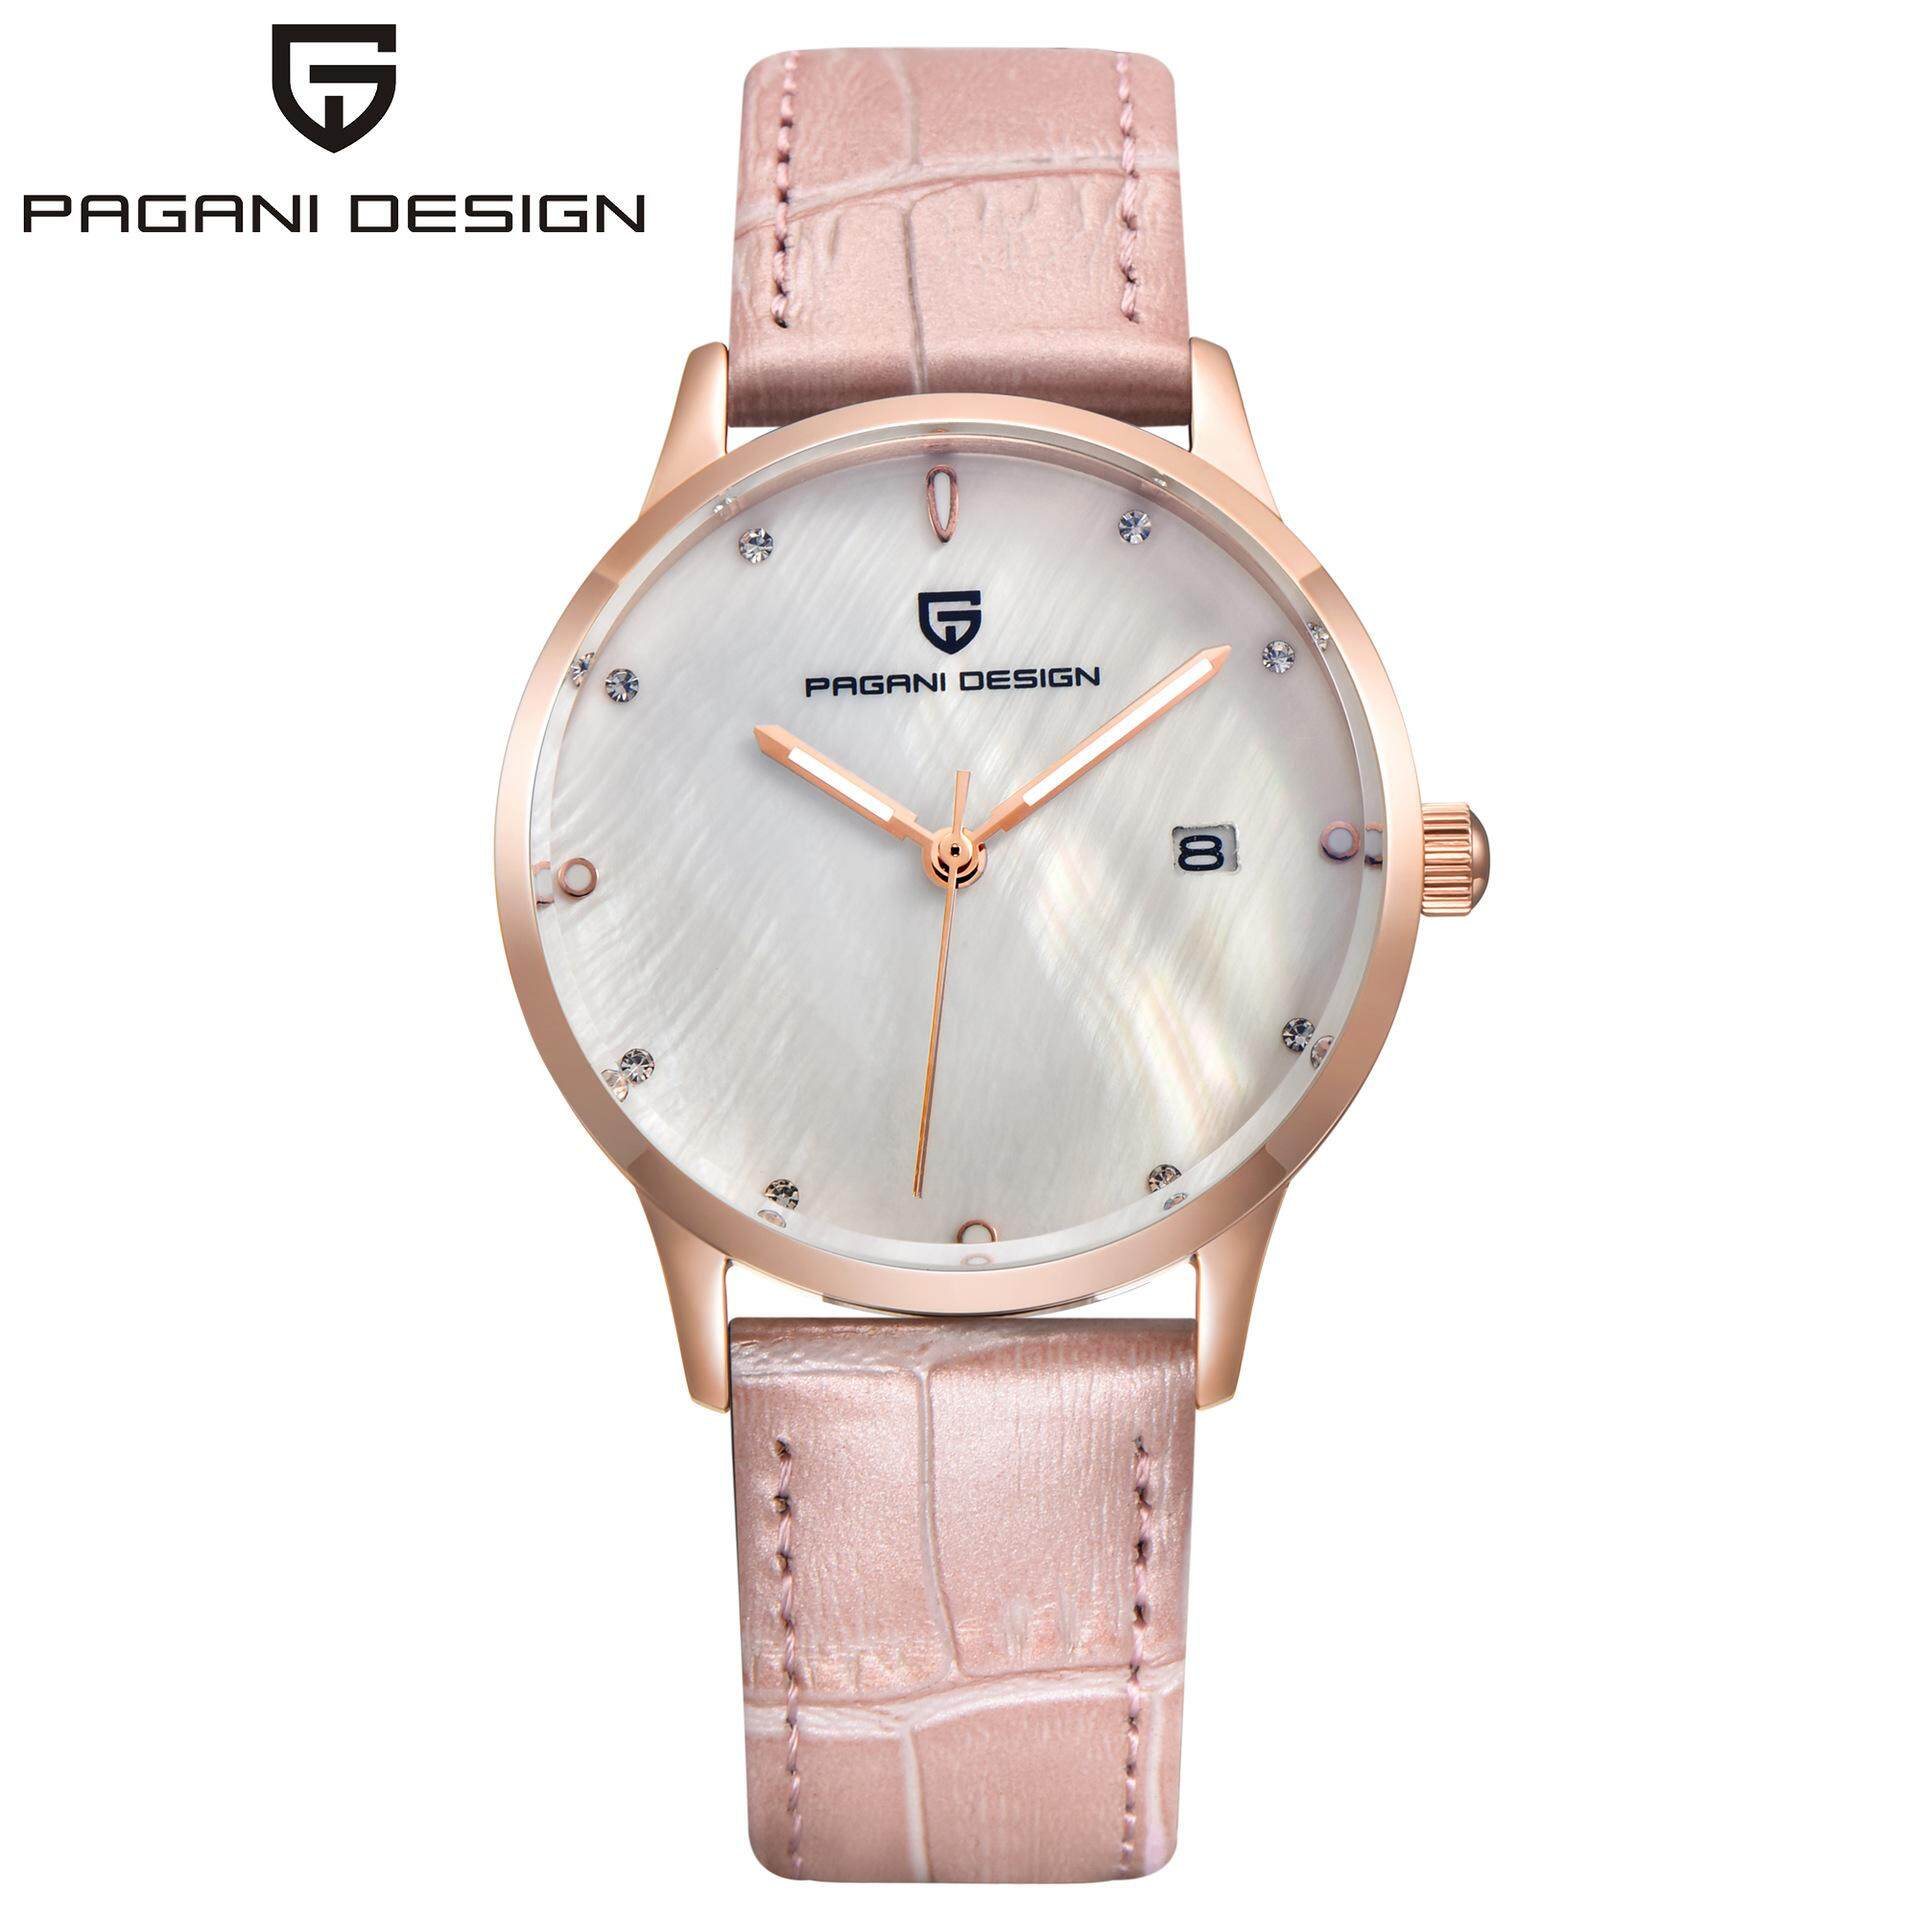 PAGANI DESIGN Brand Lady Fashion Quartz Watch Women Waterproof 30M shell dial Luxury Dress Watches Relogio Feminino Malaysia